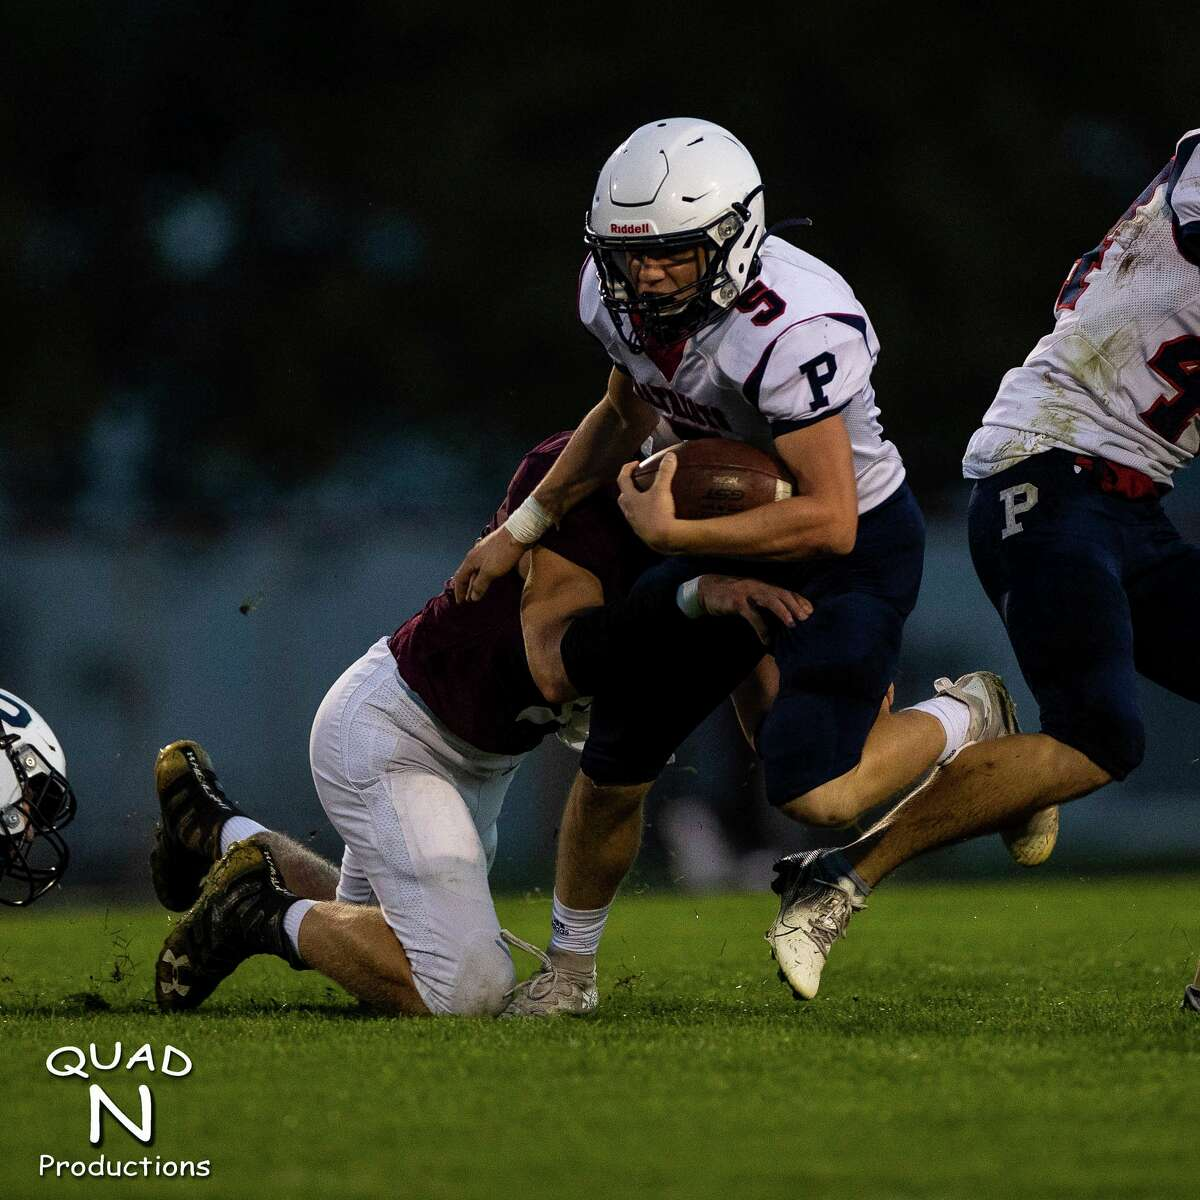 USA's Landon Russell runs to slip a tackle. (Quad N Productions/For the Tribune)